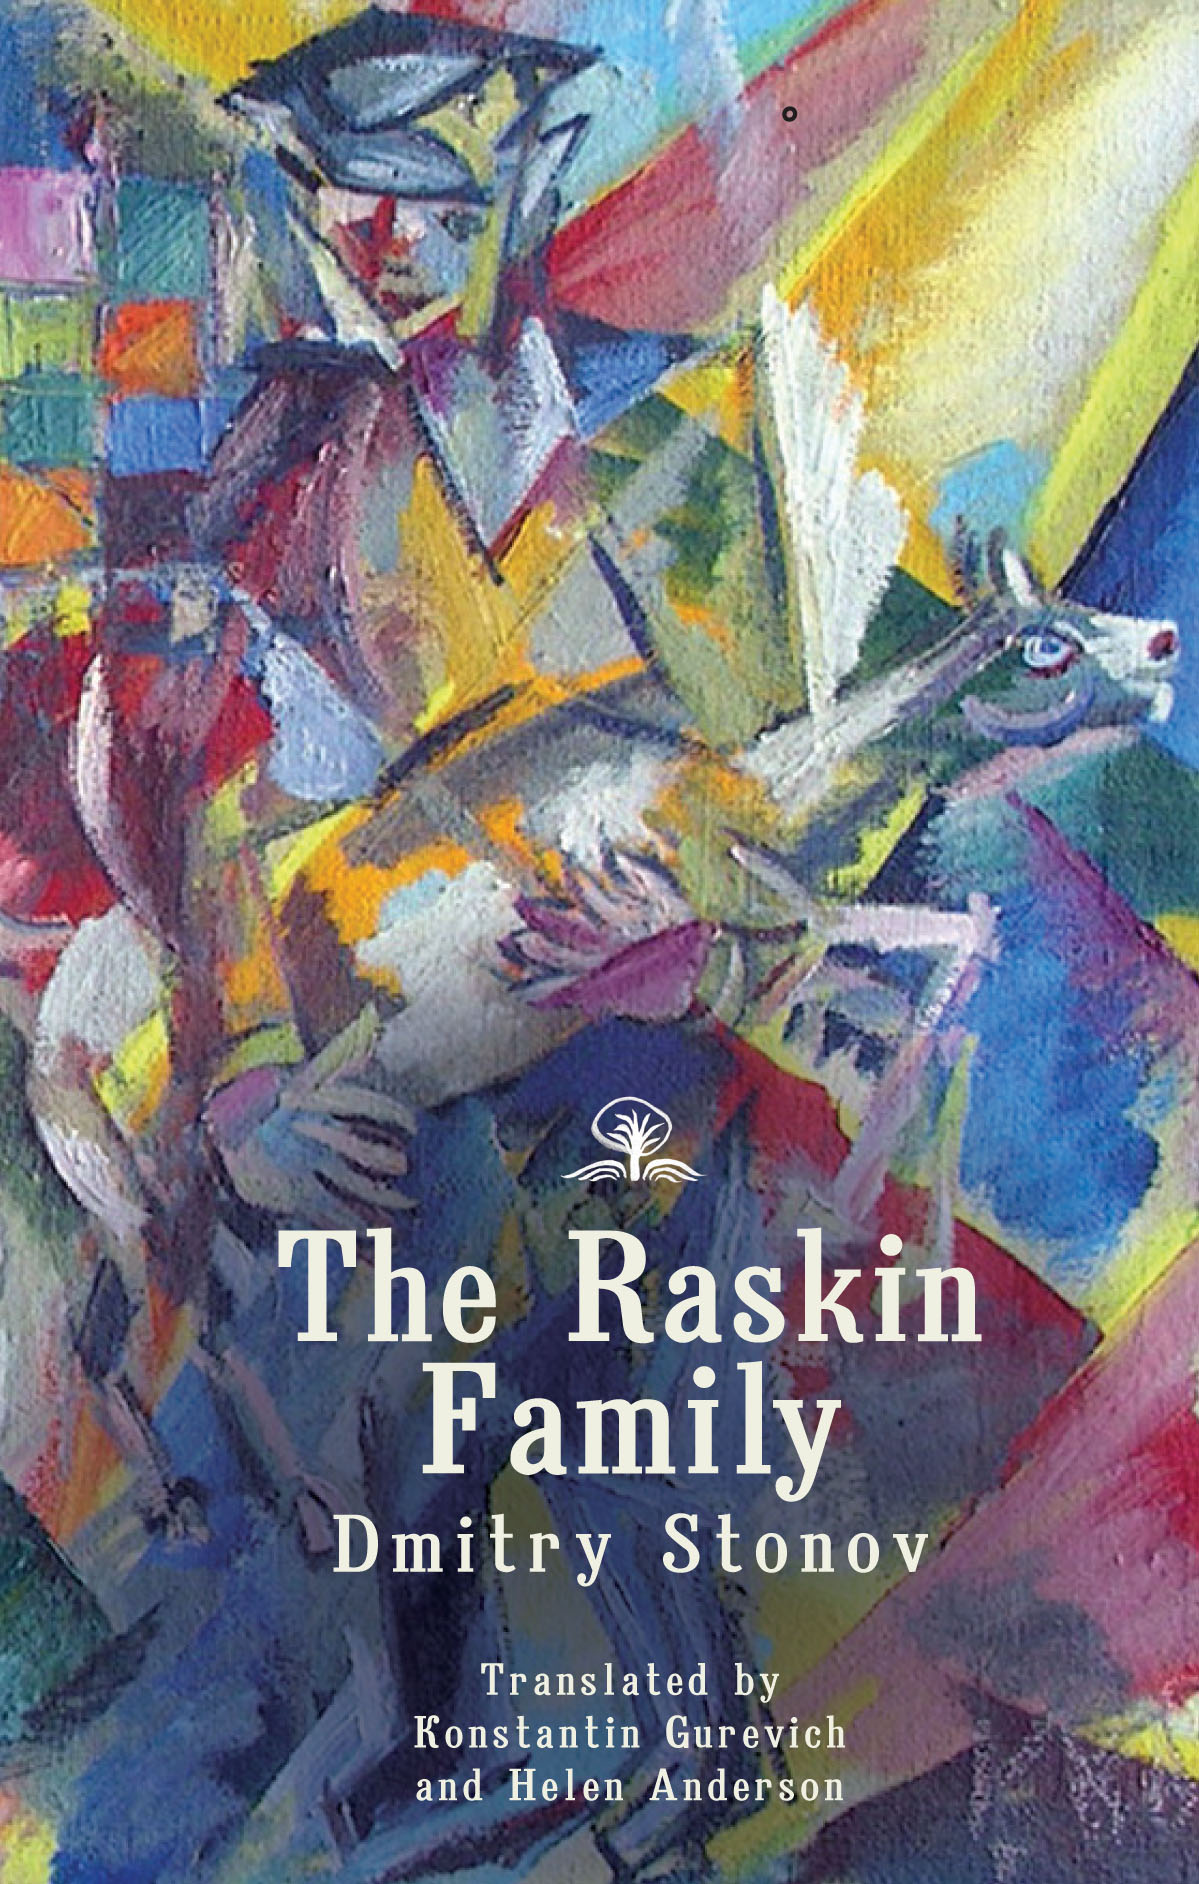 The Raskin Family: A Novel        by Dmitry Stonov, translated from the Russian by Konstantin Gurevich & Helen Anderson with a forward and afterword by Leonid Stonov